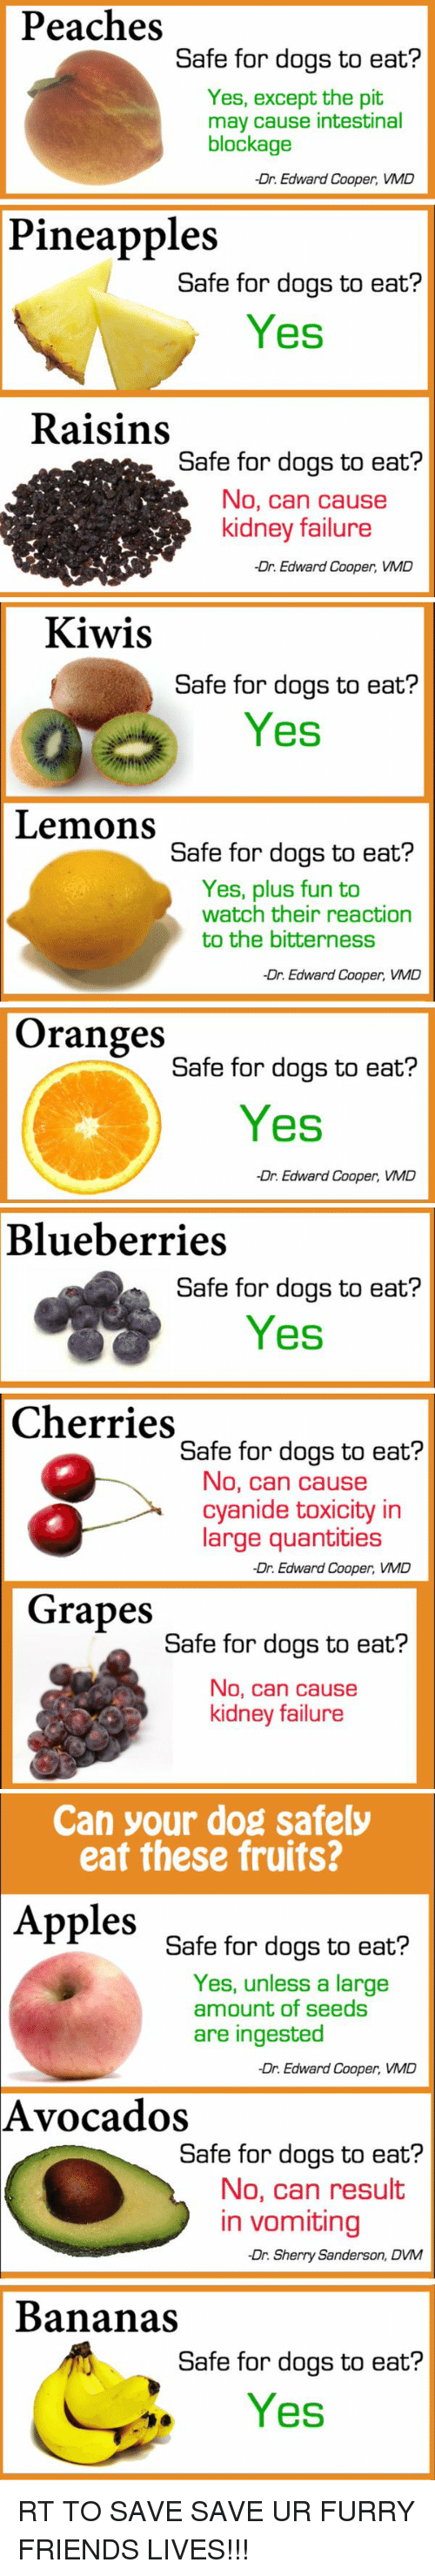 dvm: Peaches  Safe for dogs to eat?  Yes, except the pit  may cause intestinal  blockage  -Dr. Edward Cooper, VMD  Pineapples  Safe for dogs to eat?  Yes  Raisins  Safe for dogs to eat?  No, can cause  kidney failure  -Dr. Edward Cooper, VMD   Kiwis  Safe for dogs to eat?  Yes  Lemons  Safe for dogs to eat?  Yes, plus fun to  watch their reaction  to the bitterness  -Dr. Edward Cooper, VMD  Oranges  Safe for dogs to eat?  Yes  Dr. Edward Cooper, VMD   Blueberries  Safe for dogs to eat?  Yes  Cherries  Safe for dogs to eat?  No, can cause  cyanide toxicity in  large quantities  -Dr. Edward Cooper, VMD  Grapes  Safe for dogs to eat?  No, can cause  kidney failure   Can your dog safely  eat these fruits?  Apples  Safe for dogs to eat?  Yes, unless a large  amount of seeds  are ingested  -Dr. Edward Cooper, VMD  Avocados  Safe for dogs to eat?  No, can result  in vomiting  -Dr. Sherry Sanderson, DVM  Bananas  Safe for dogs to eat?  Yes RT TO SAVE SAVE UR FURRY FRIENDS LIVES!!!